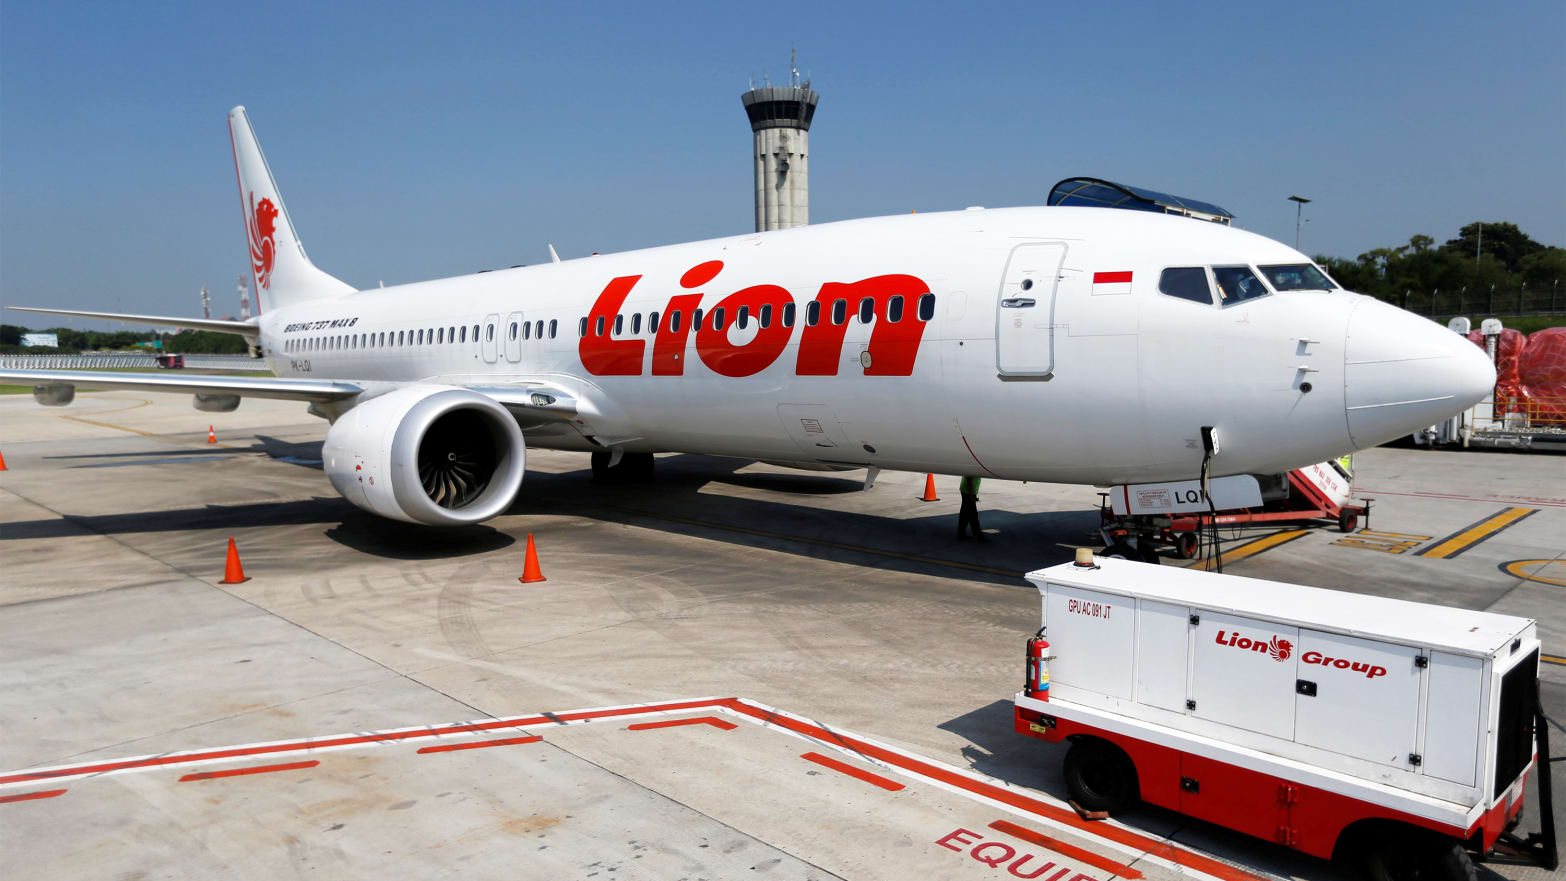 Boeing 737 MAX-8 Scandal Grows: Doomed Lion Air Flight Should Never Have Flown